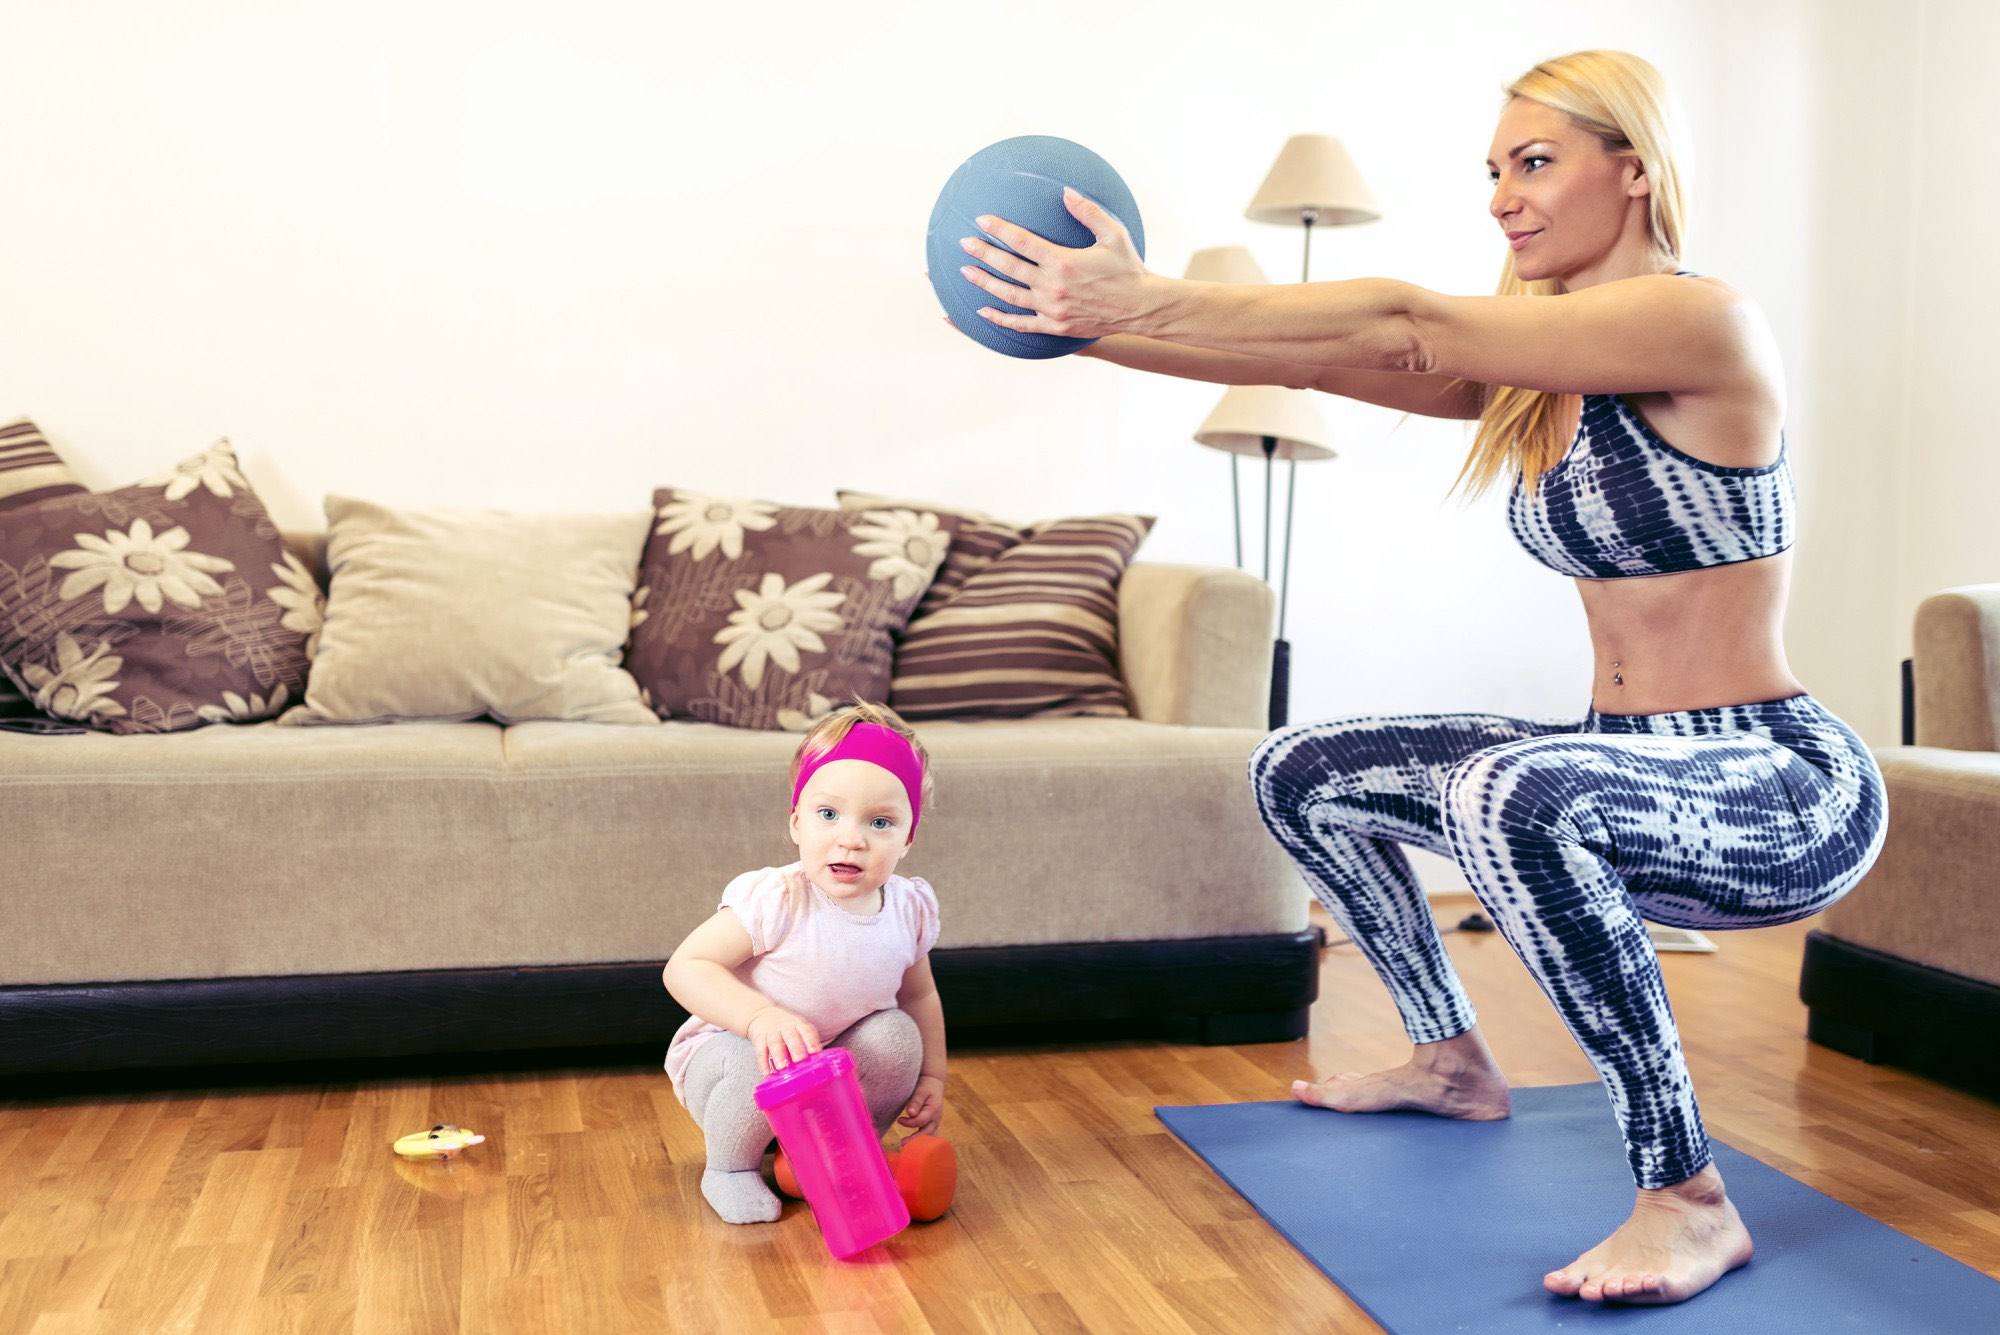 10 Best Home Workout Equipment Buys to Get Fit at Home